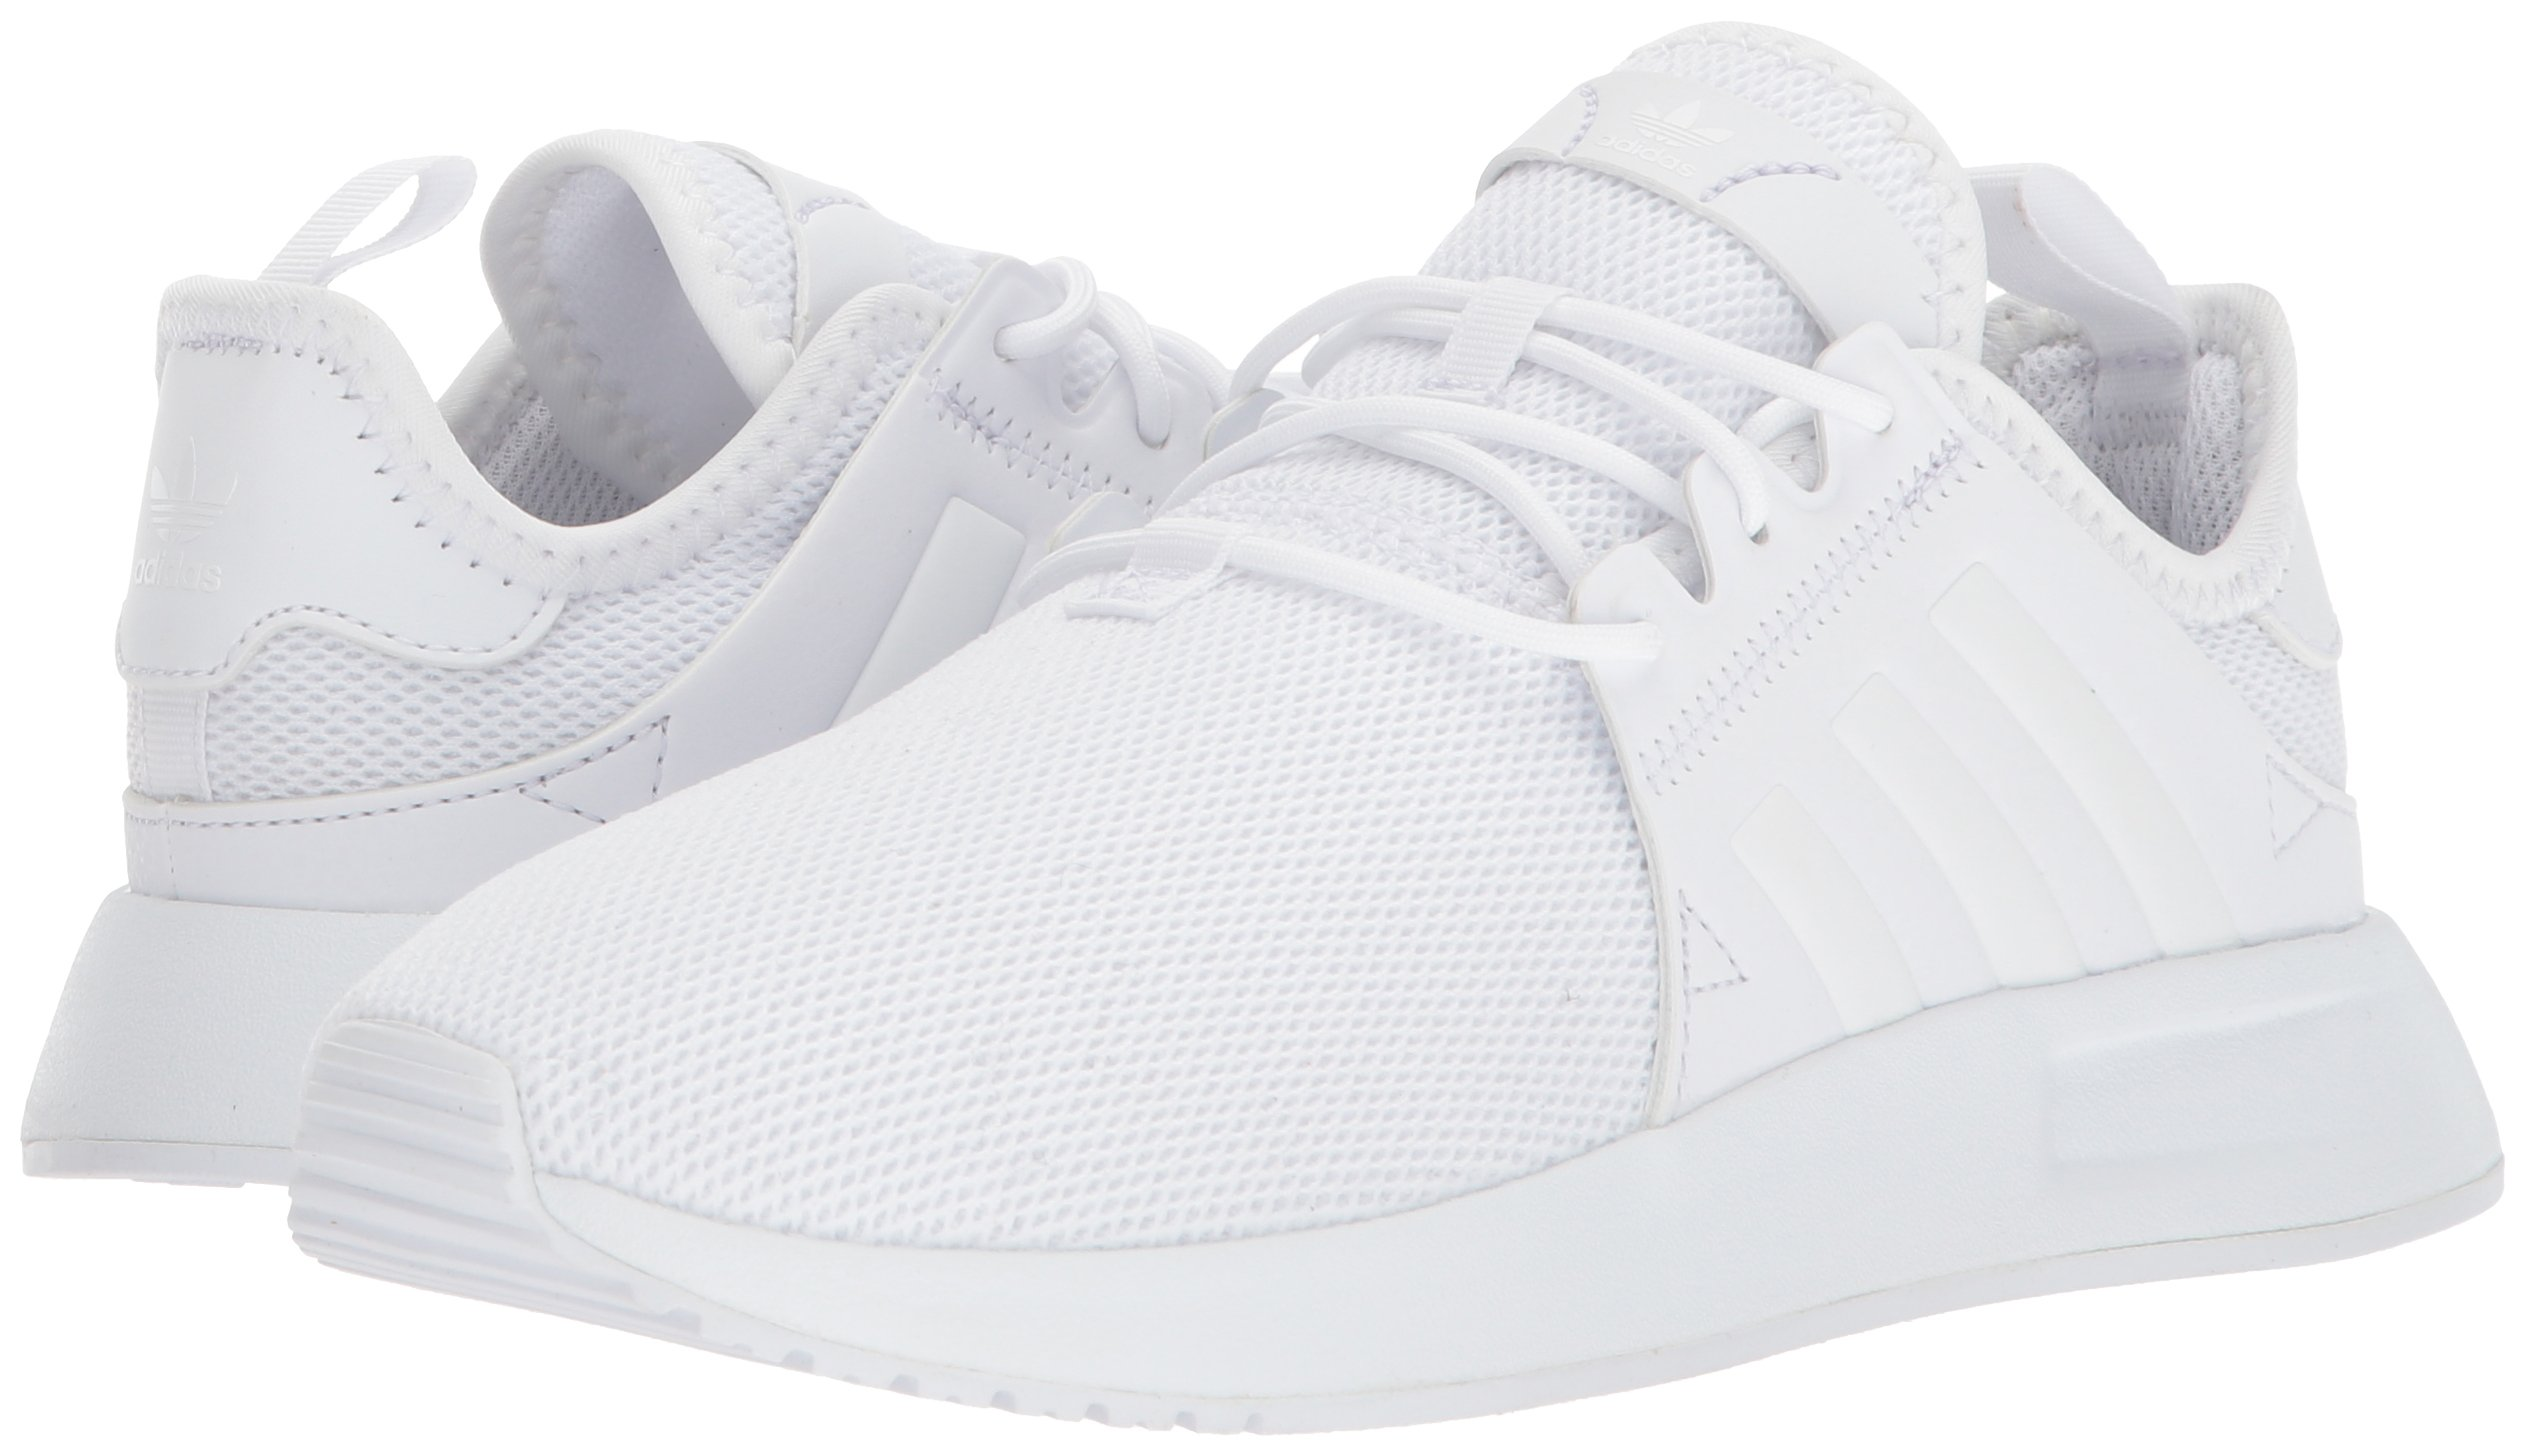 adidas Originals Boys' X_PLR C, White/White/White, 10.5 M US Little Kid by adidas Originals (Image #6)